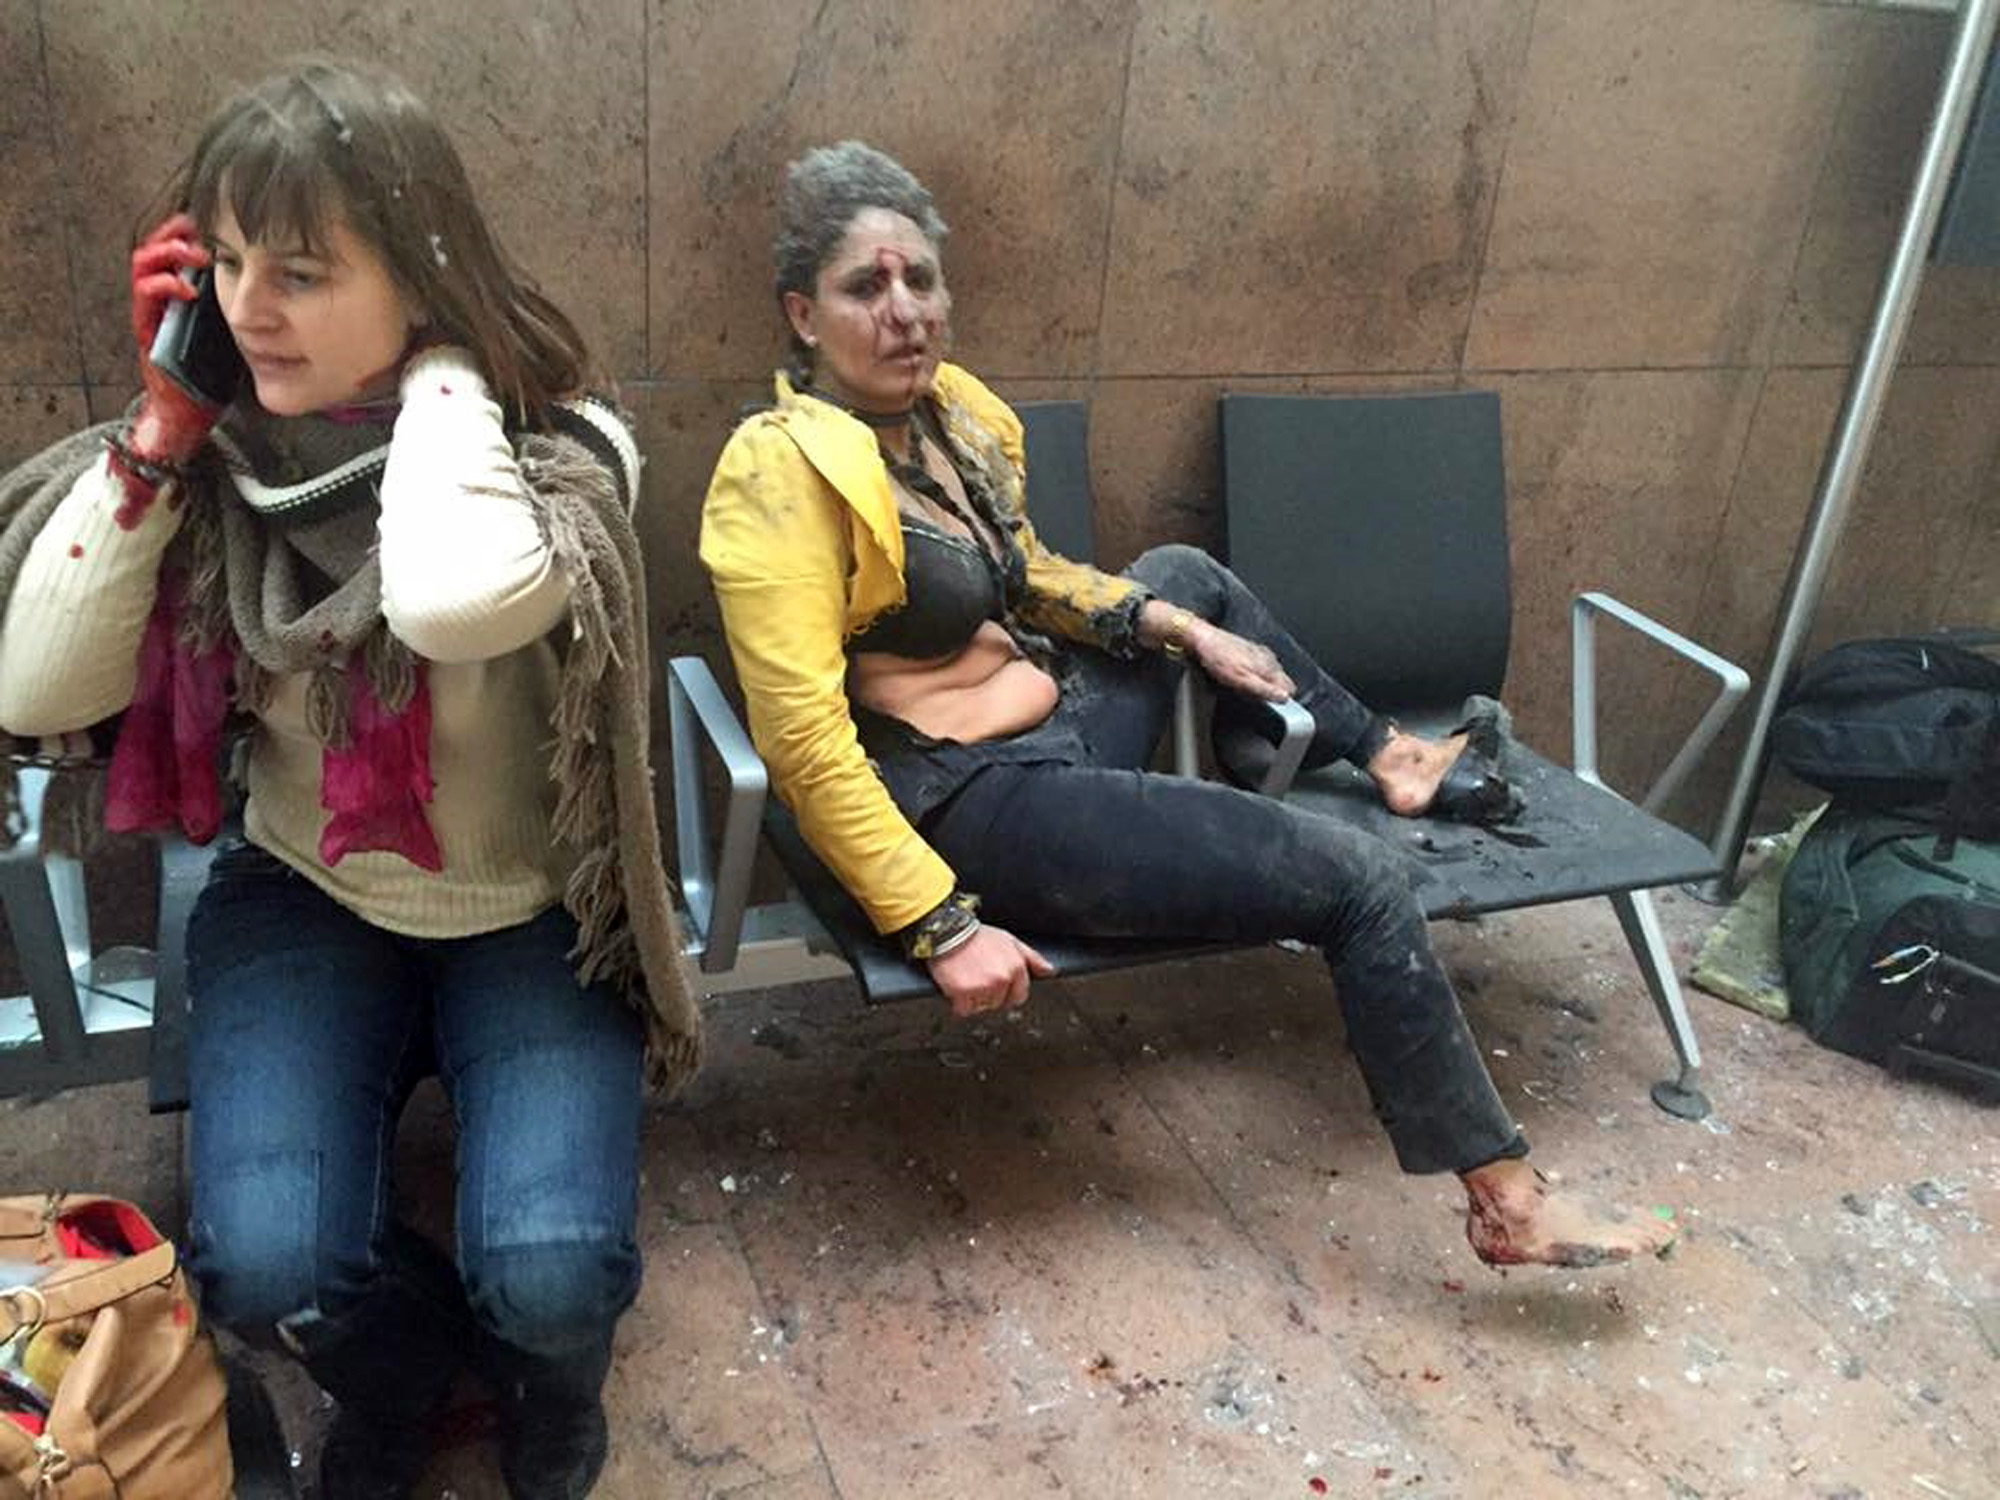 Deadly explosions rock Brussels airport, subway